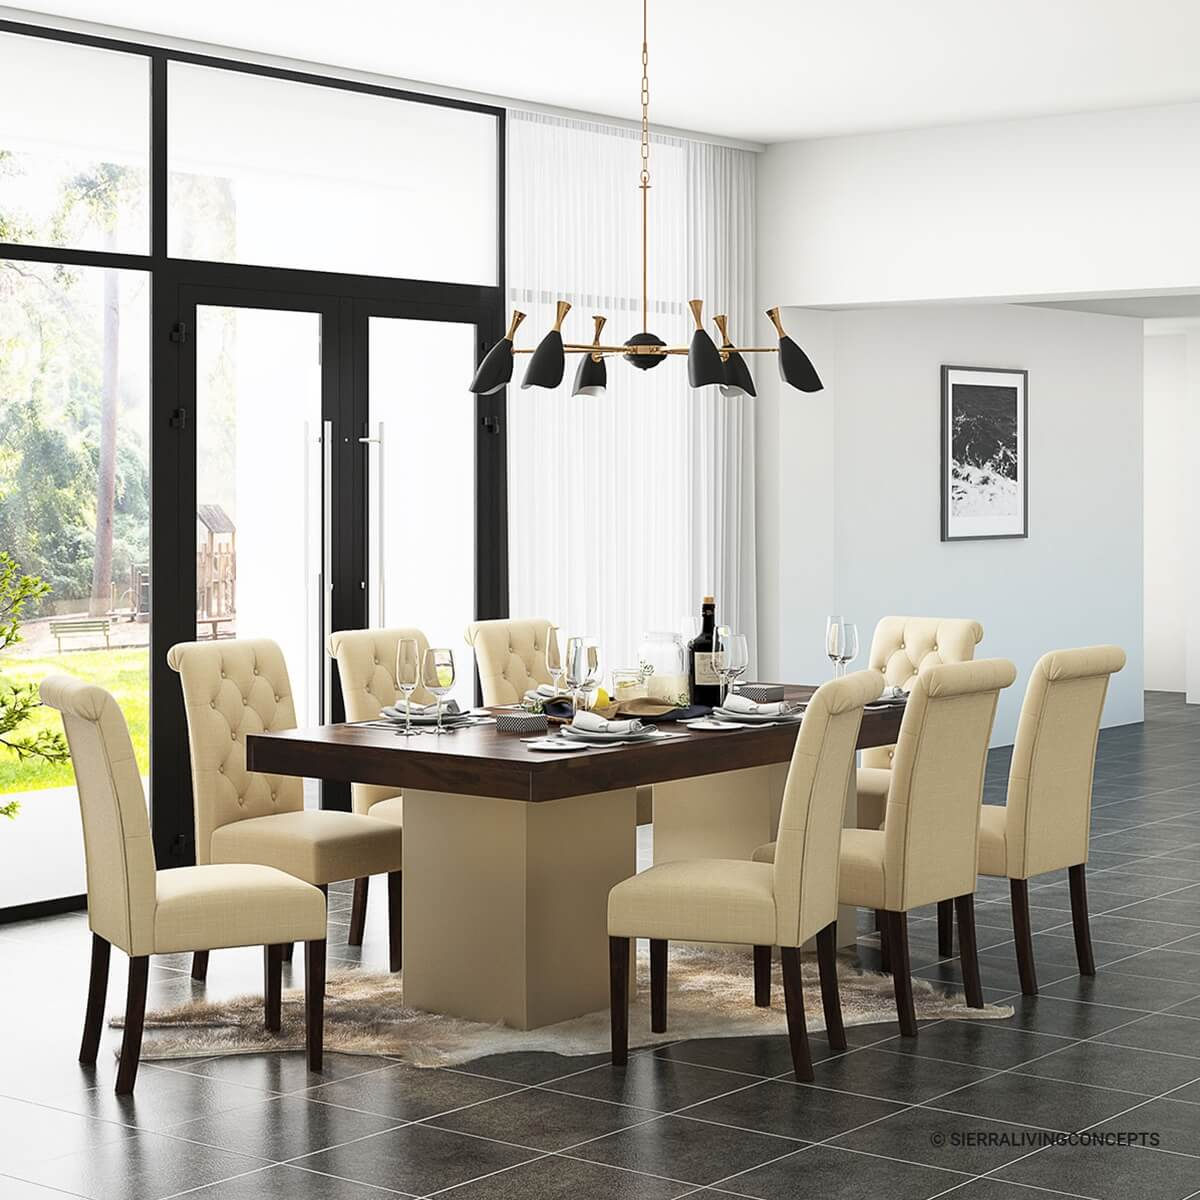 Solid Wood Large Rustic Dining Table with Leather Parson Chairs